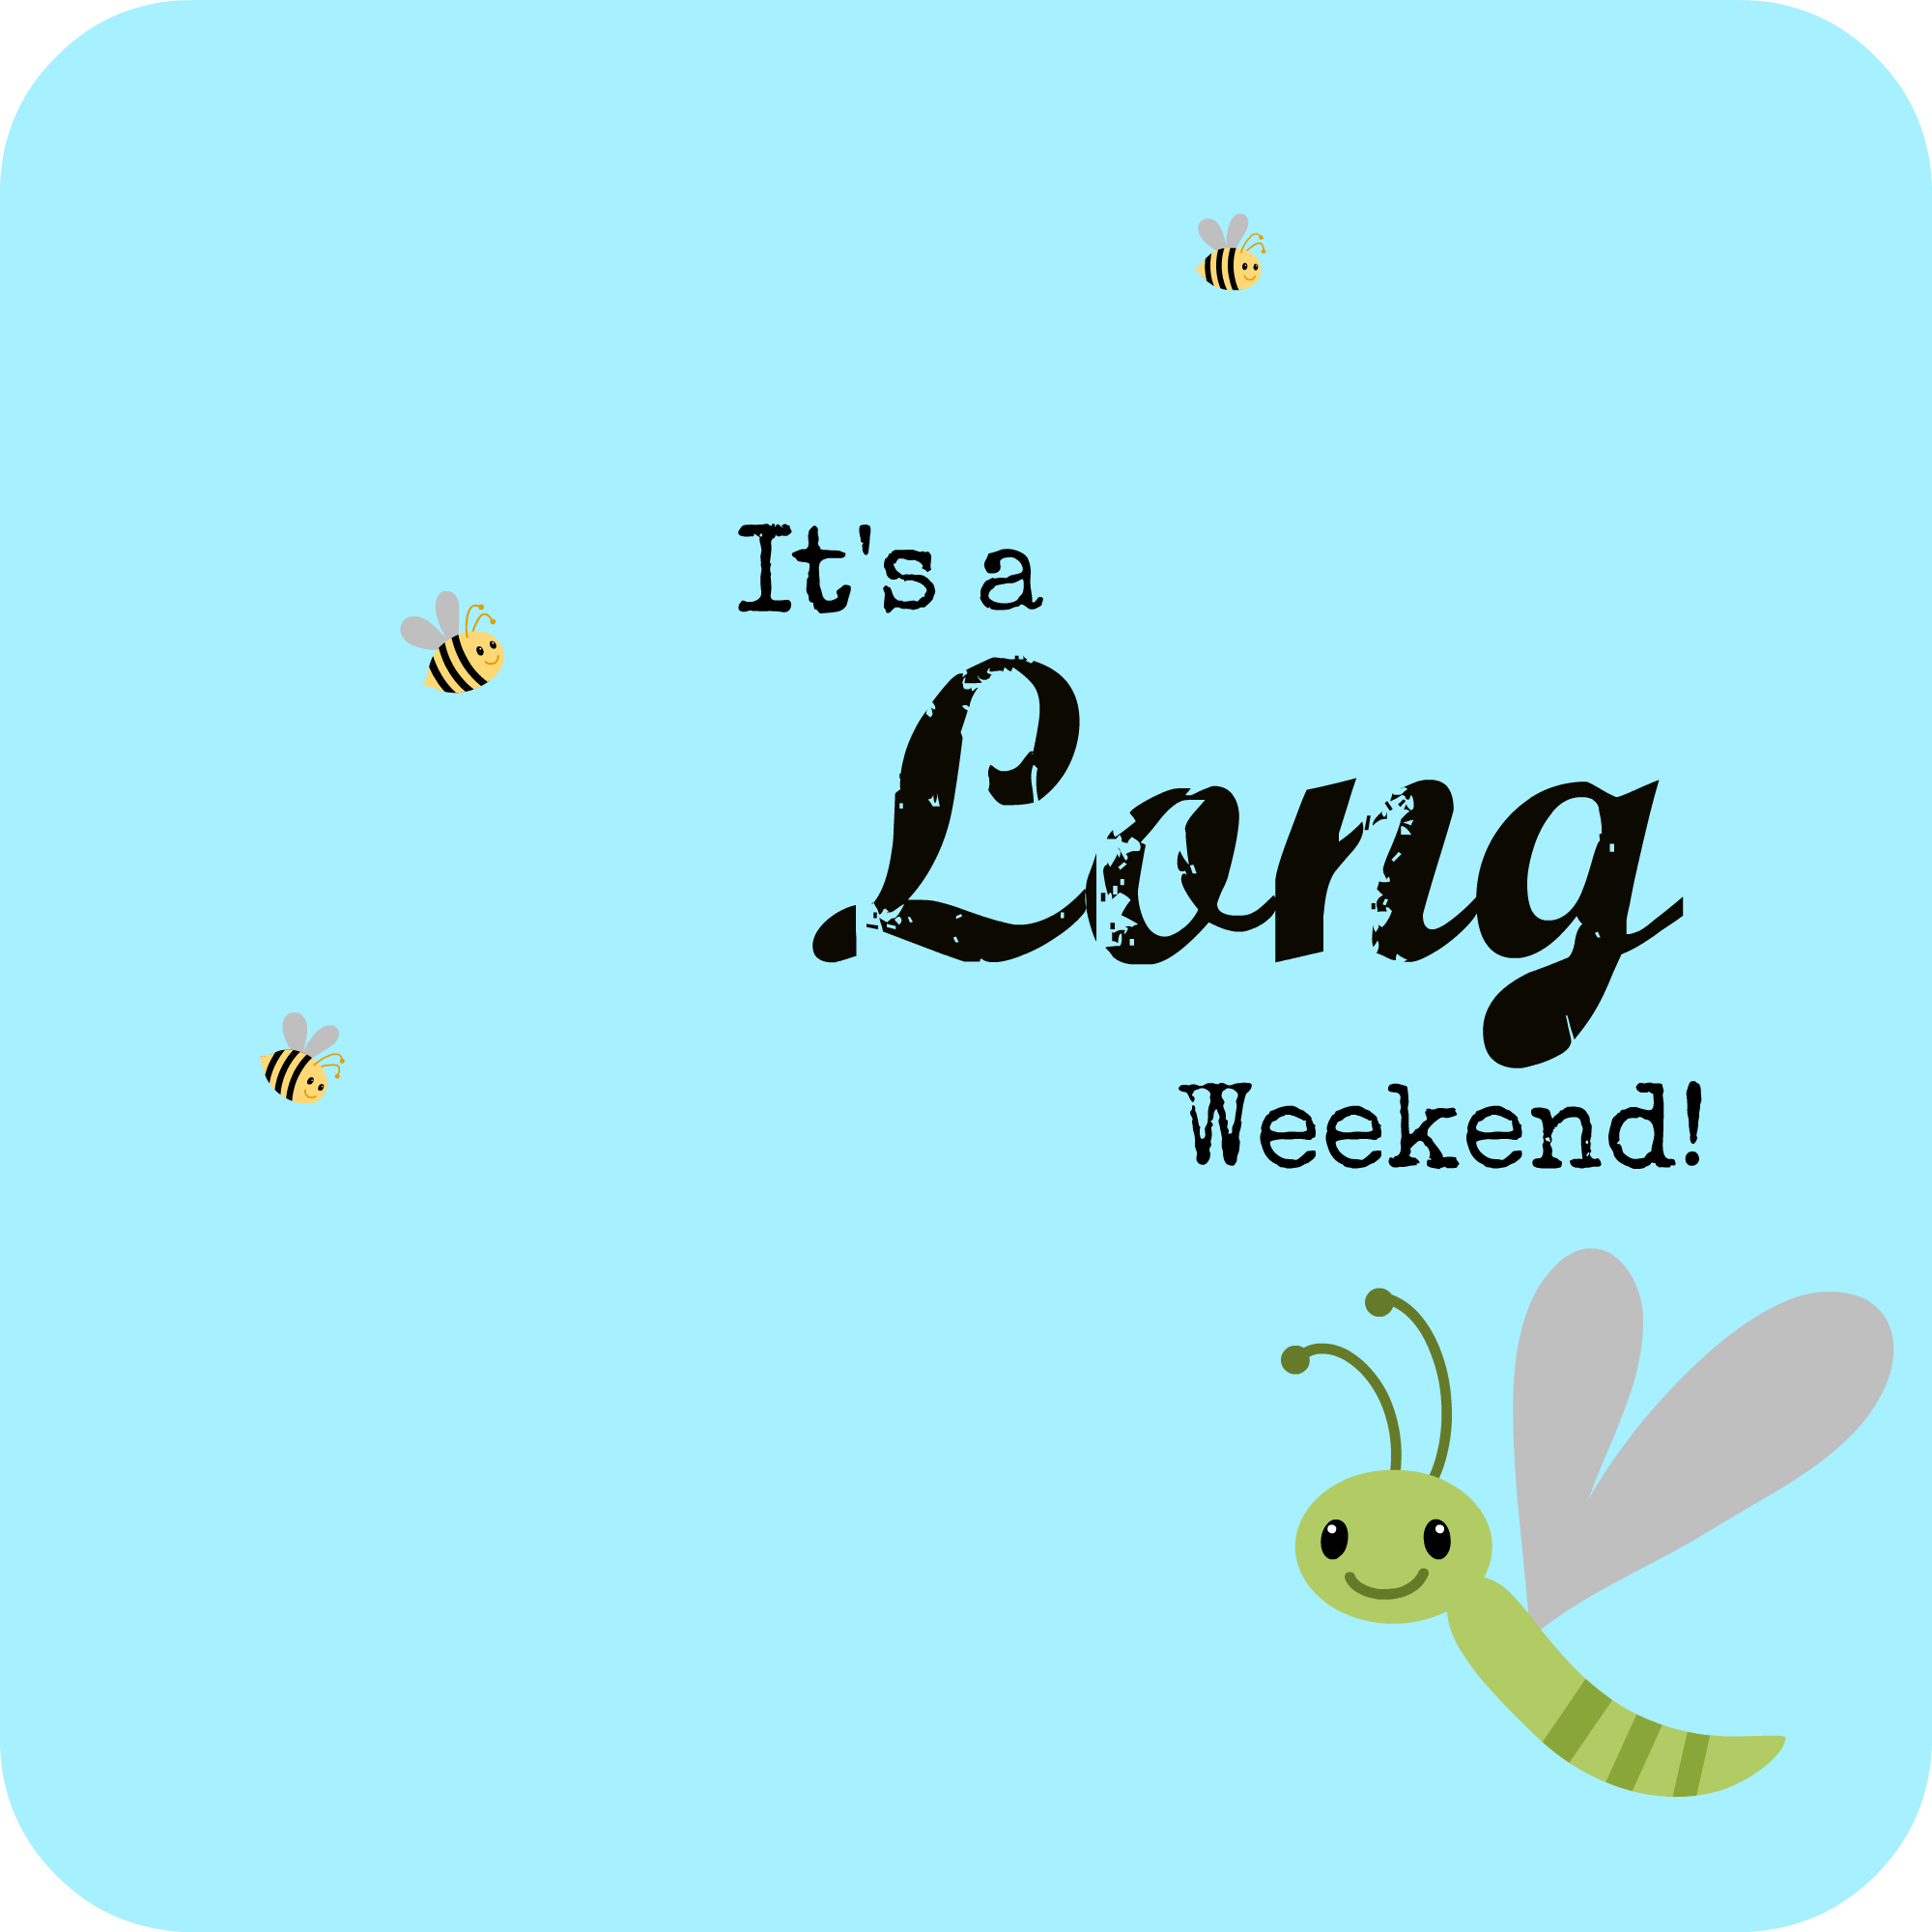 Long weekend tales from an open book - Week end a nice ...